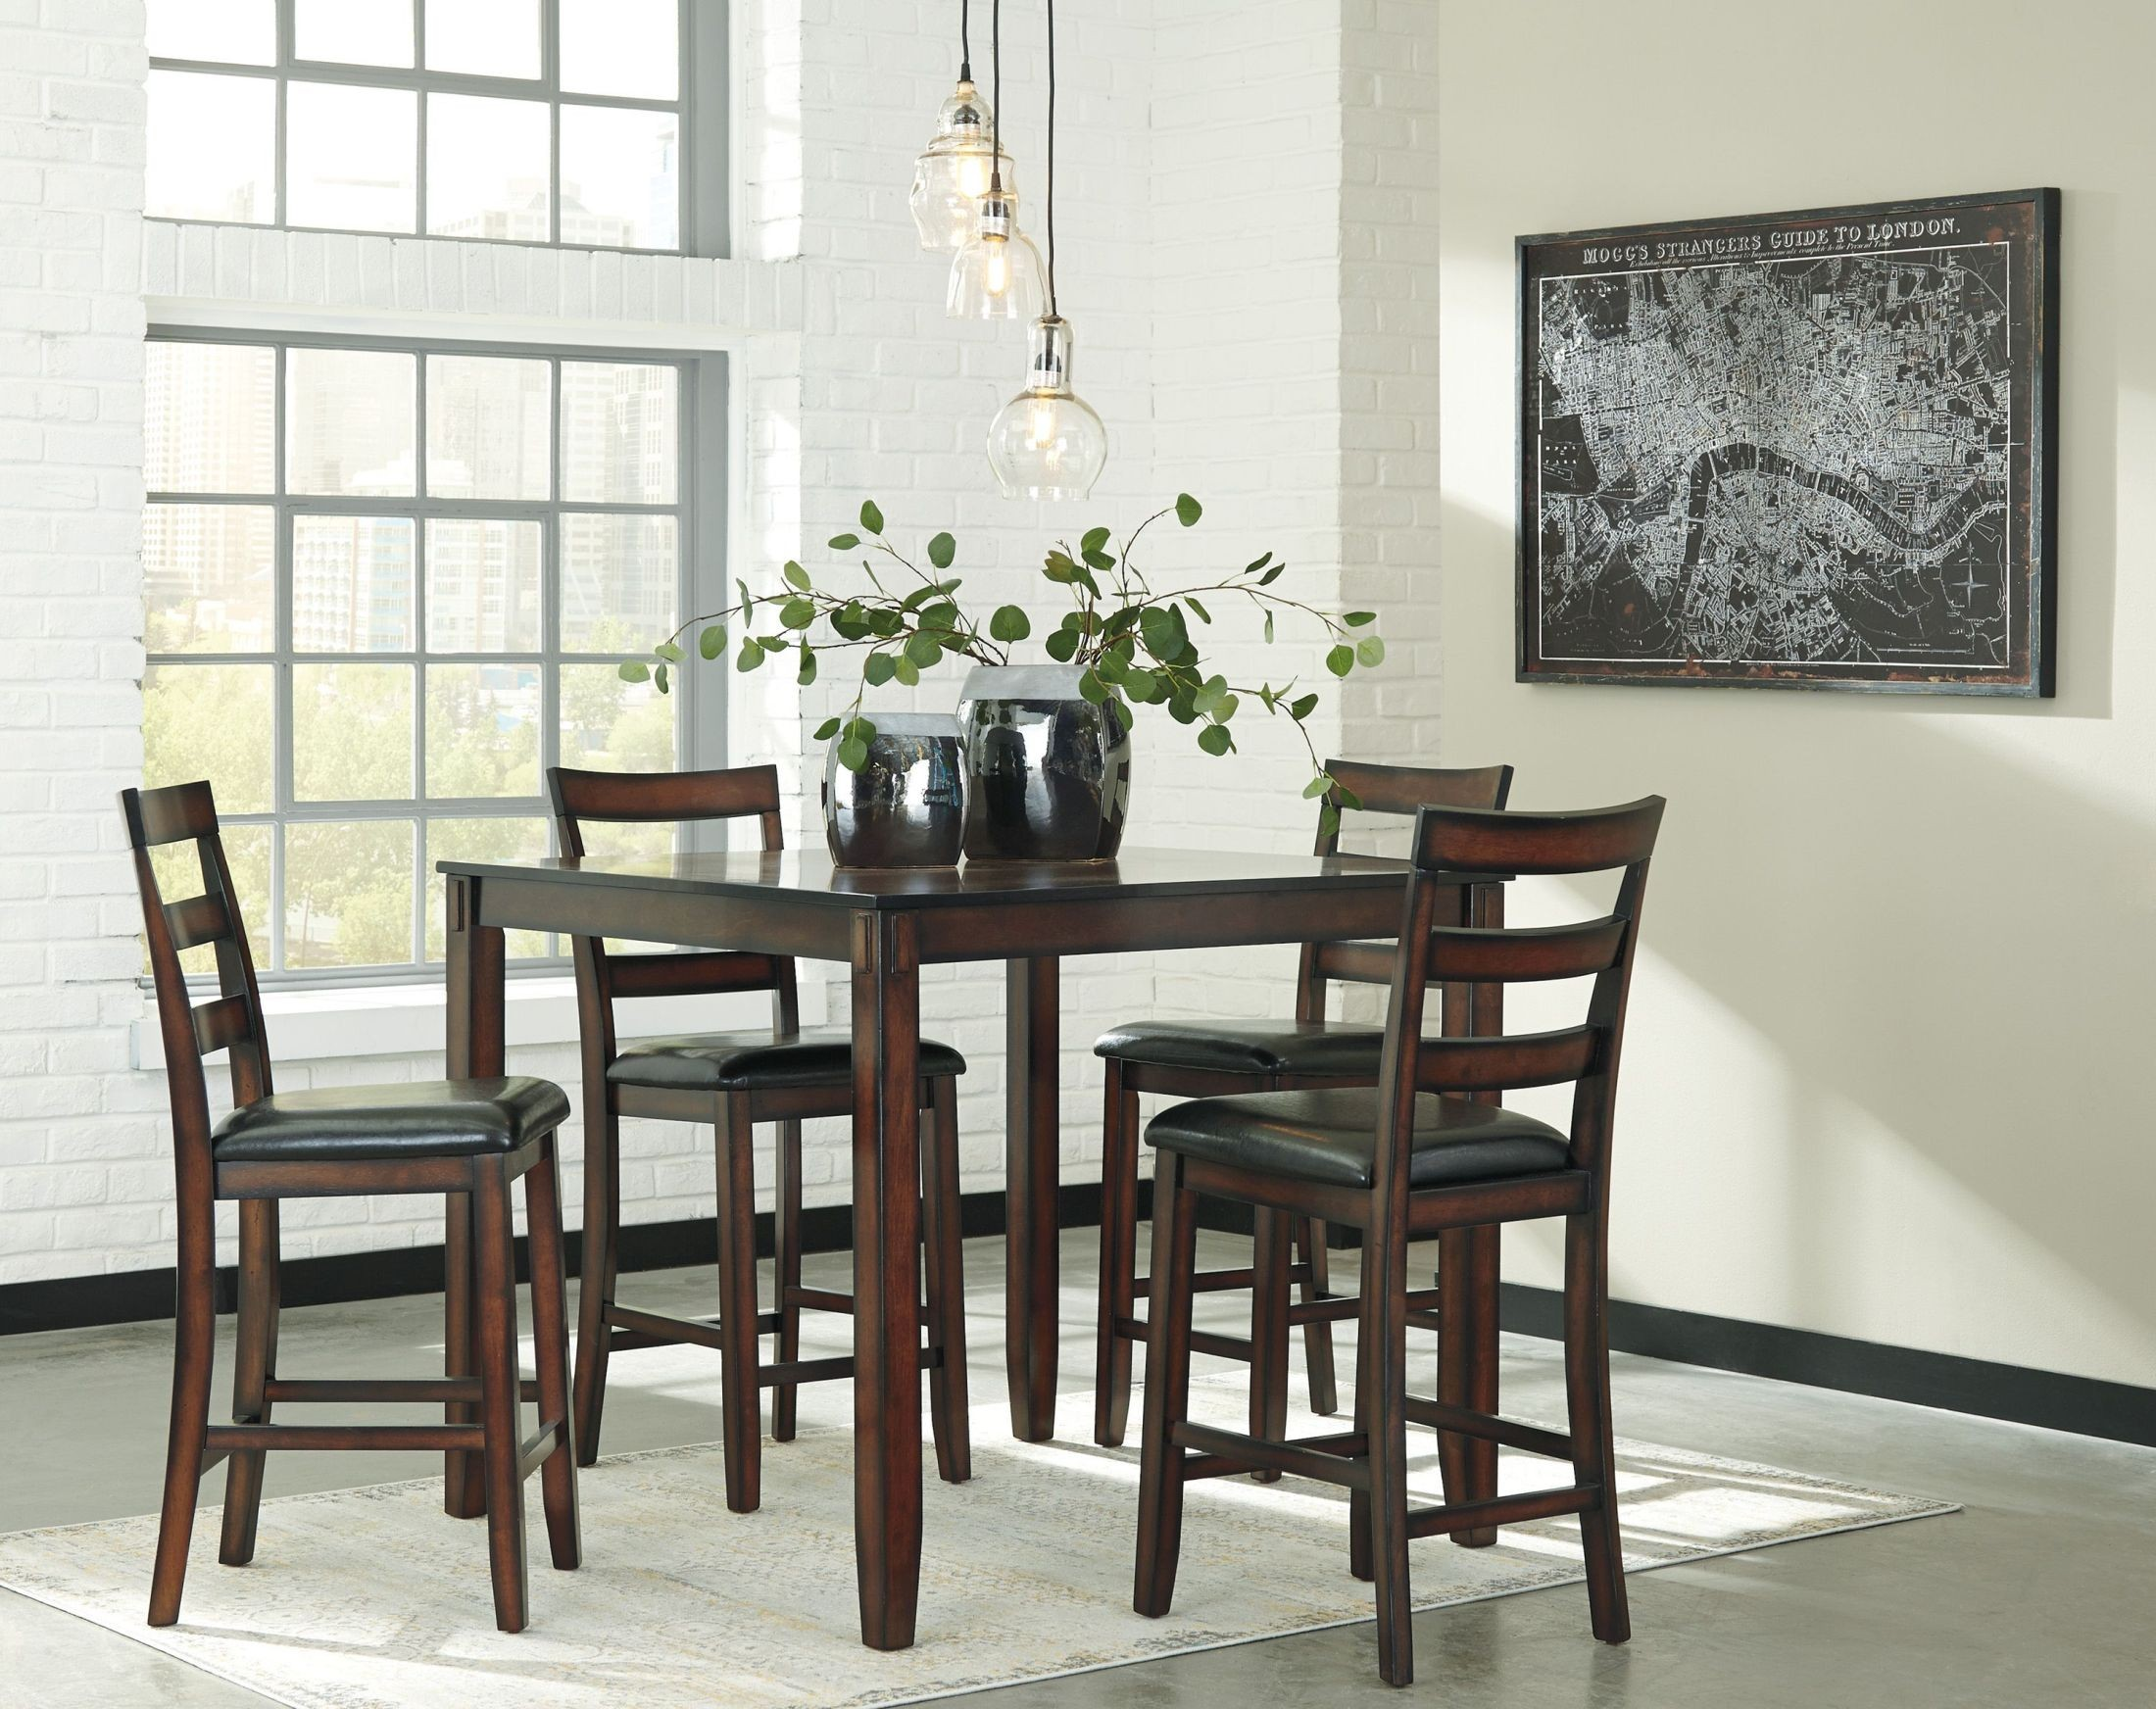 Counter Height Dining Room Chairs Coviar Brown 5 Piece Counter Height Dining Room Set From